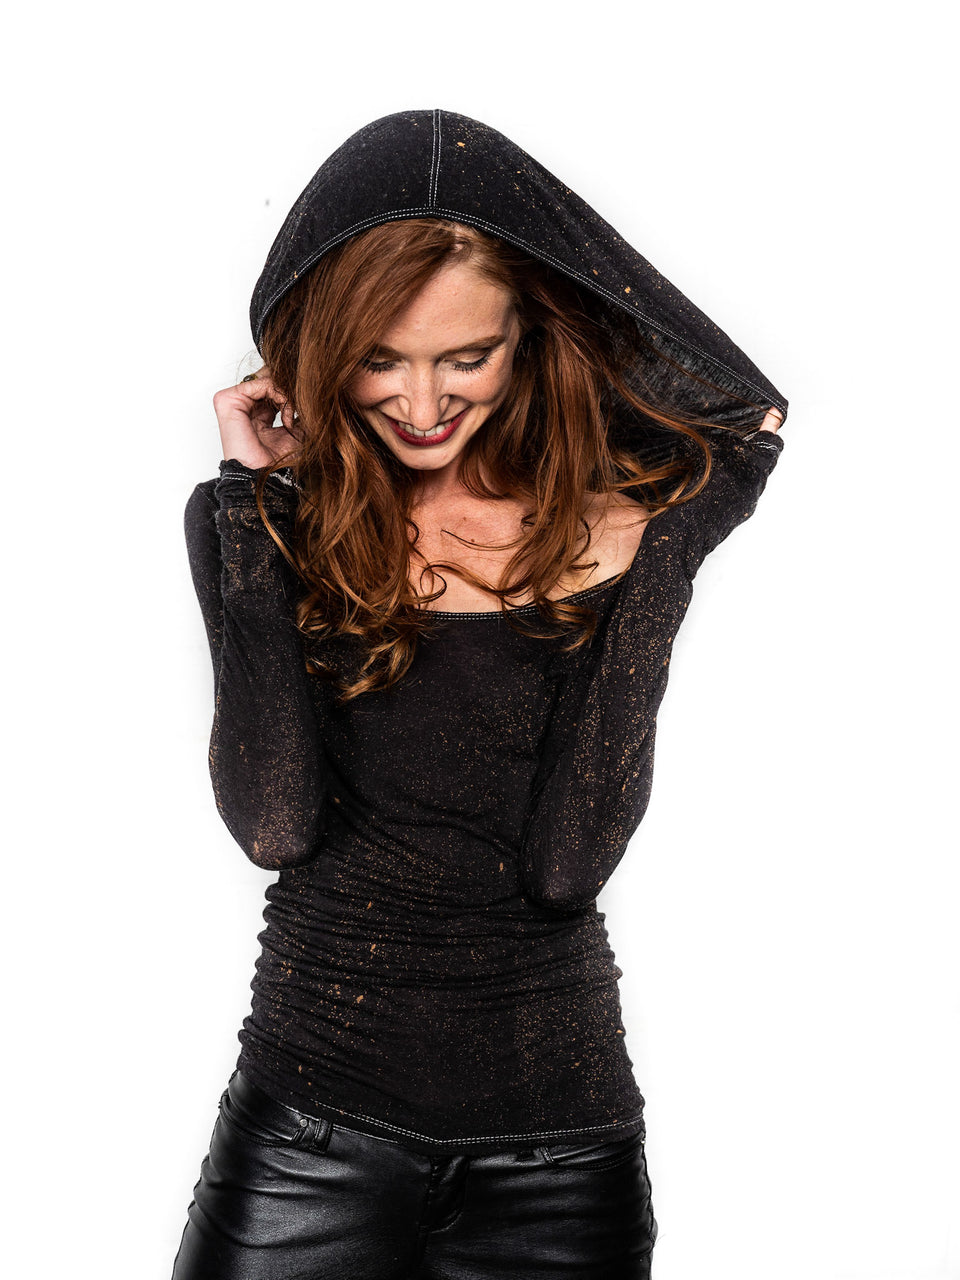 Long Sleeve Scoop Neck Shirt with Hood - Vintage Cosmic Black